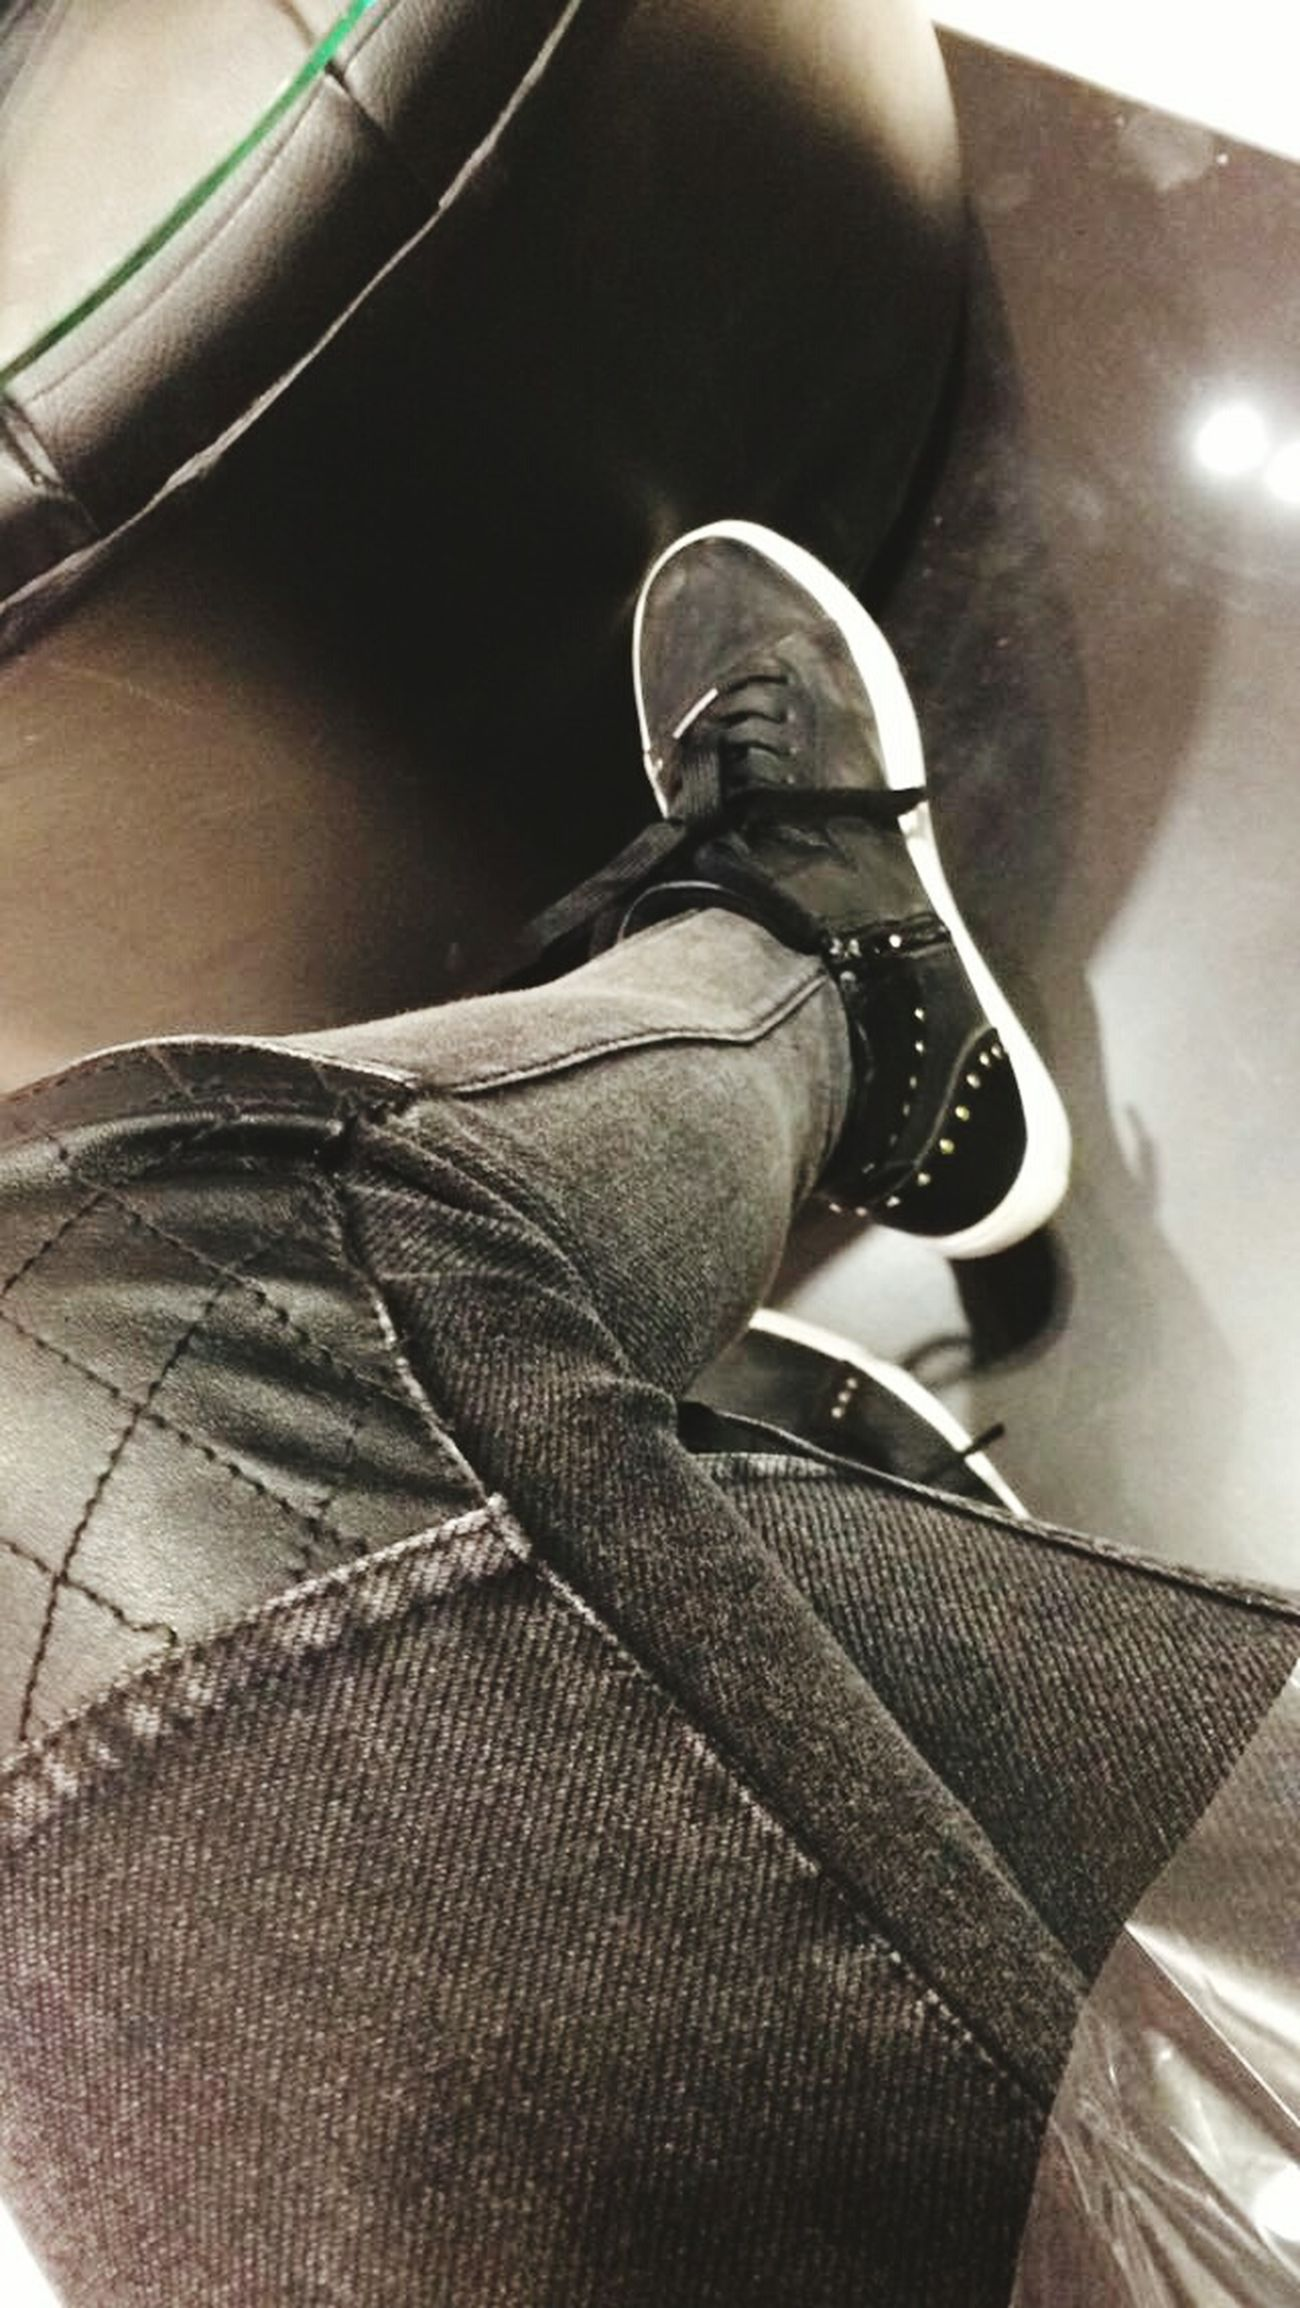 Blackandwhite Black & White Black And White Legs Black Jeans Black Shoe Stears Blackandwhite Photography Black White Grey Grey Jeans